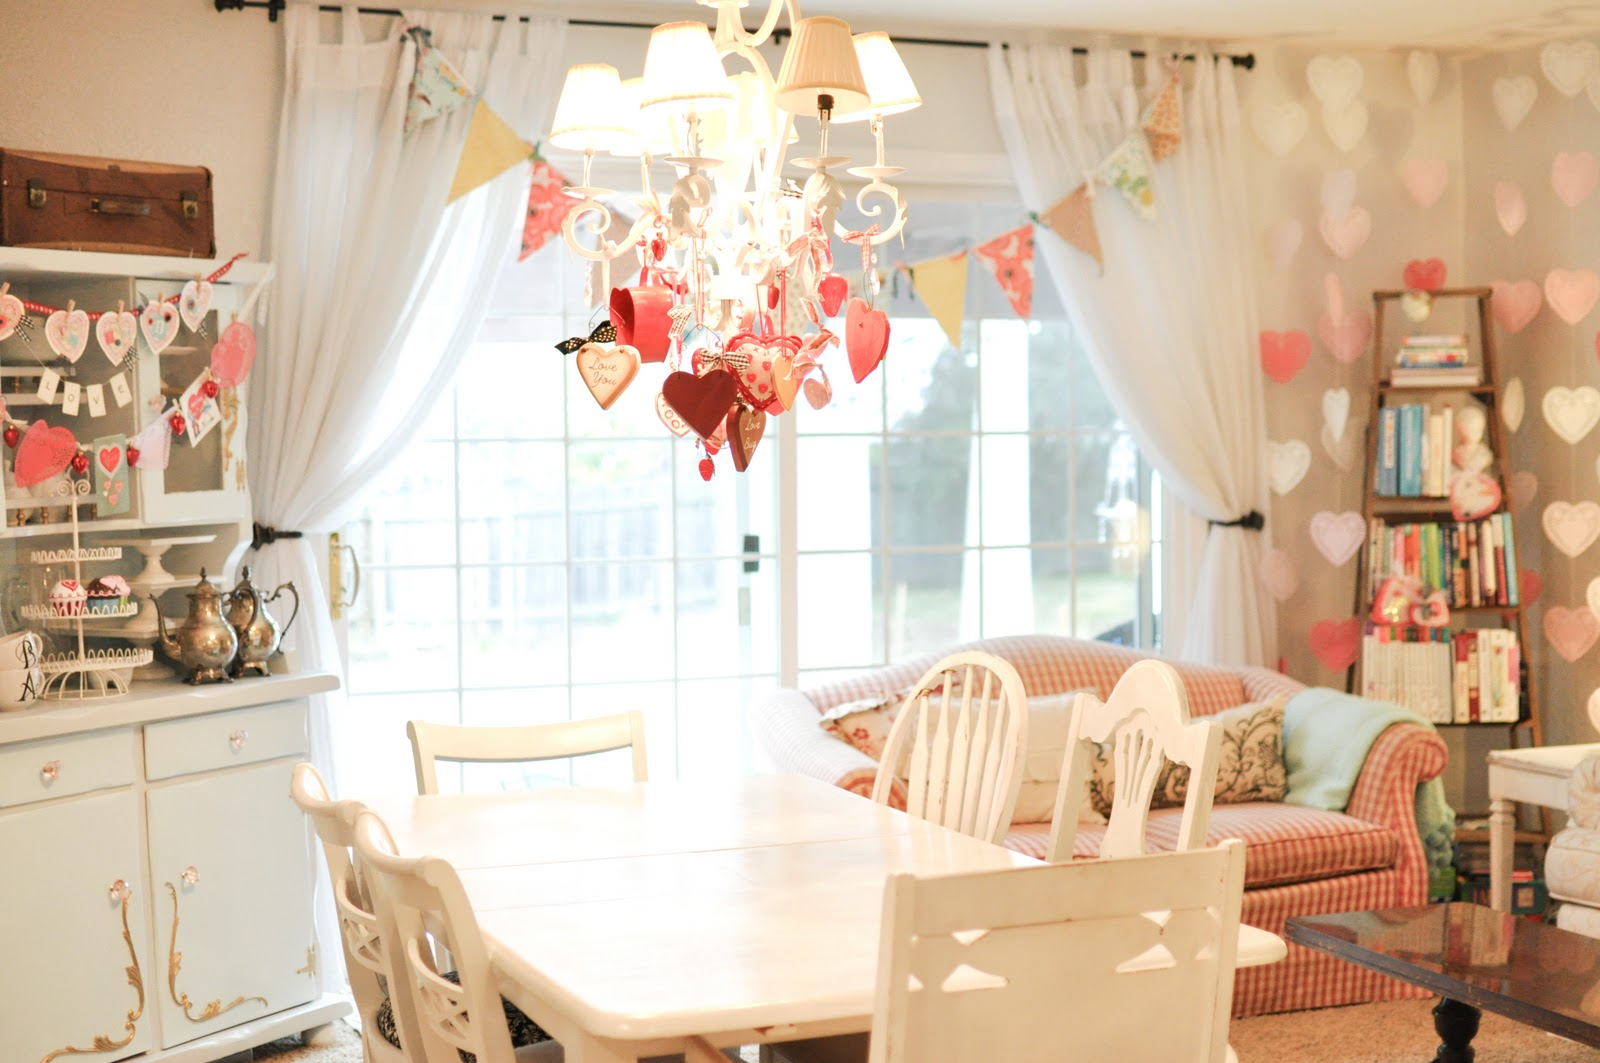 Domestic fashionista valentine 39 s day decorations 2012 - Valentines room decoration ideas ...